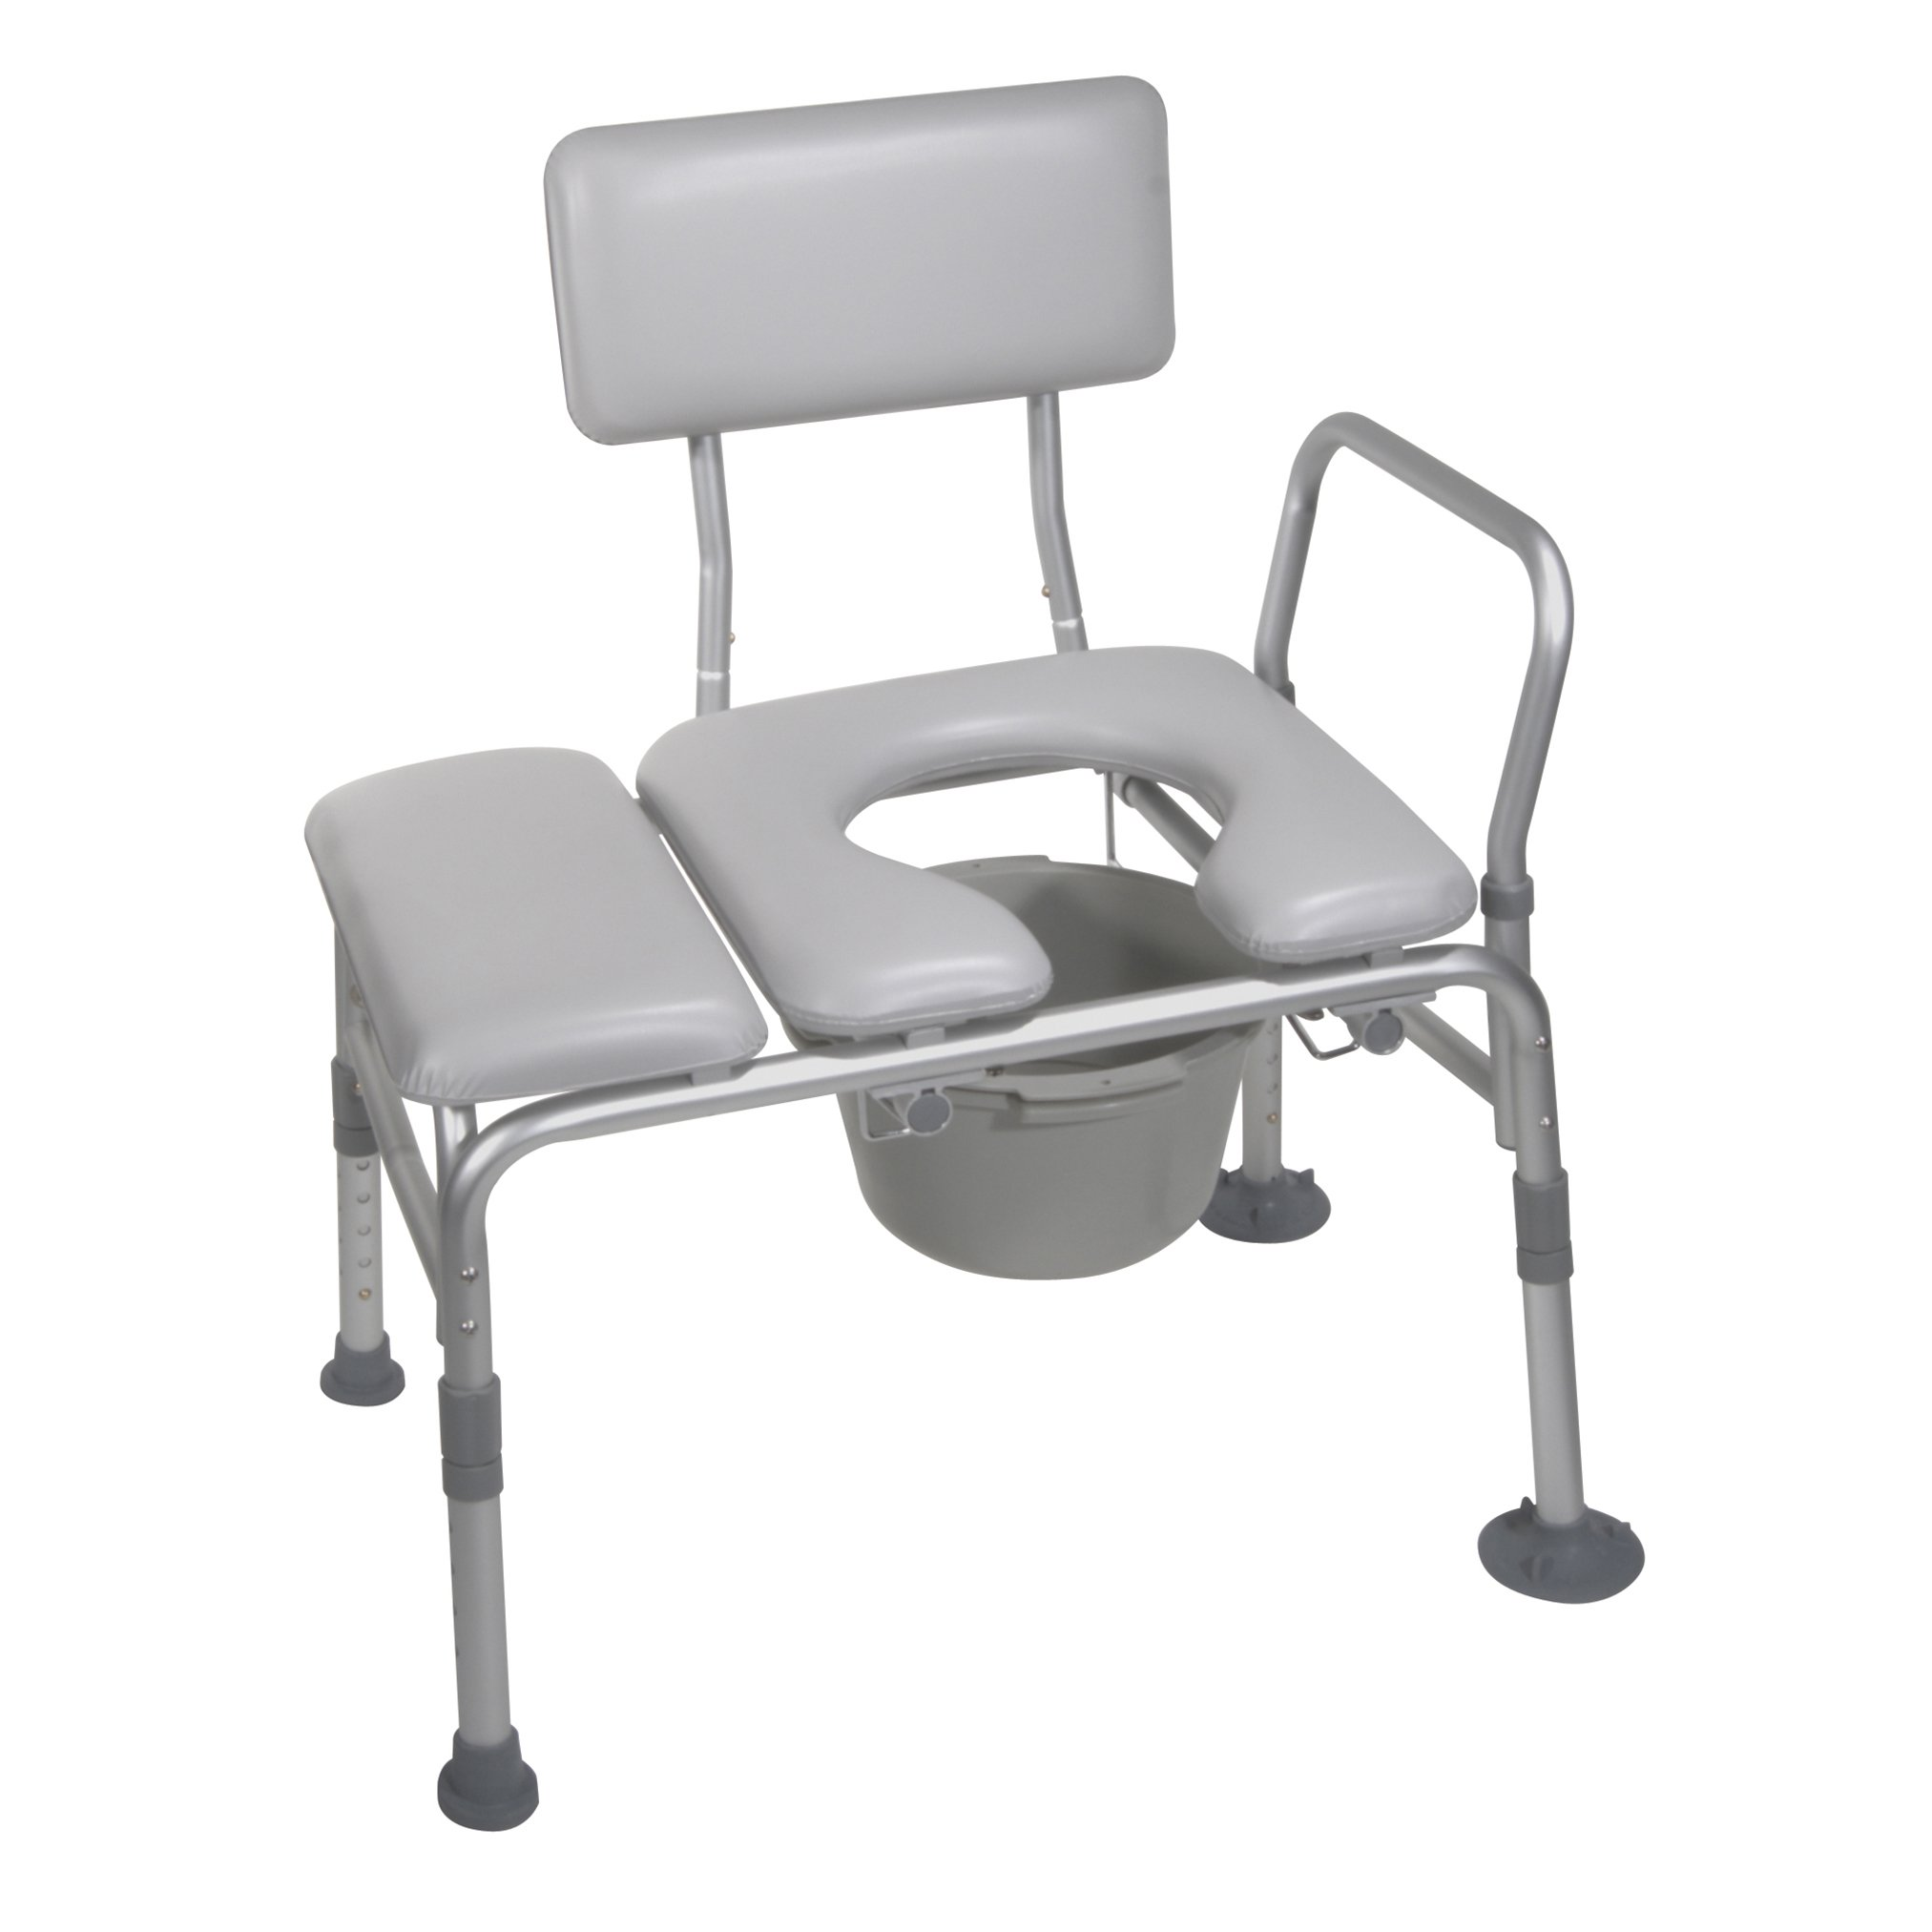 Drive Medical Combination Padded Seat Transfer Bench with Commode Opening, Gray by Drive Medical